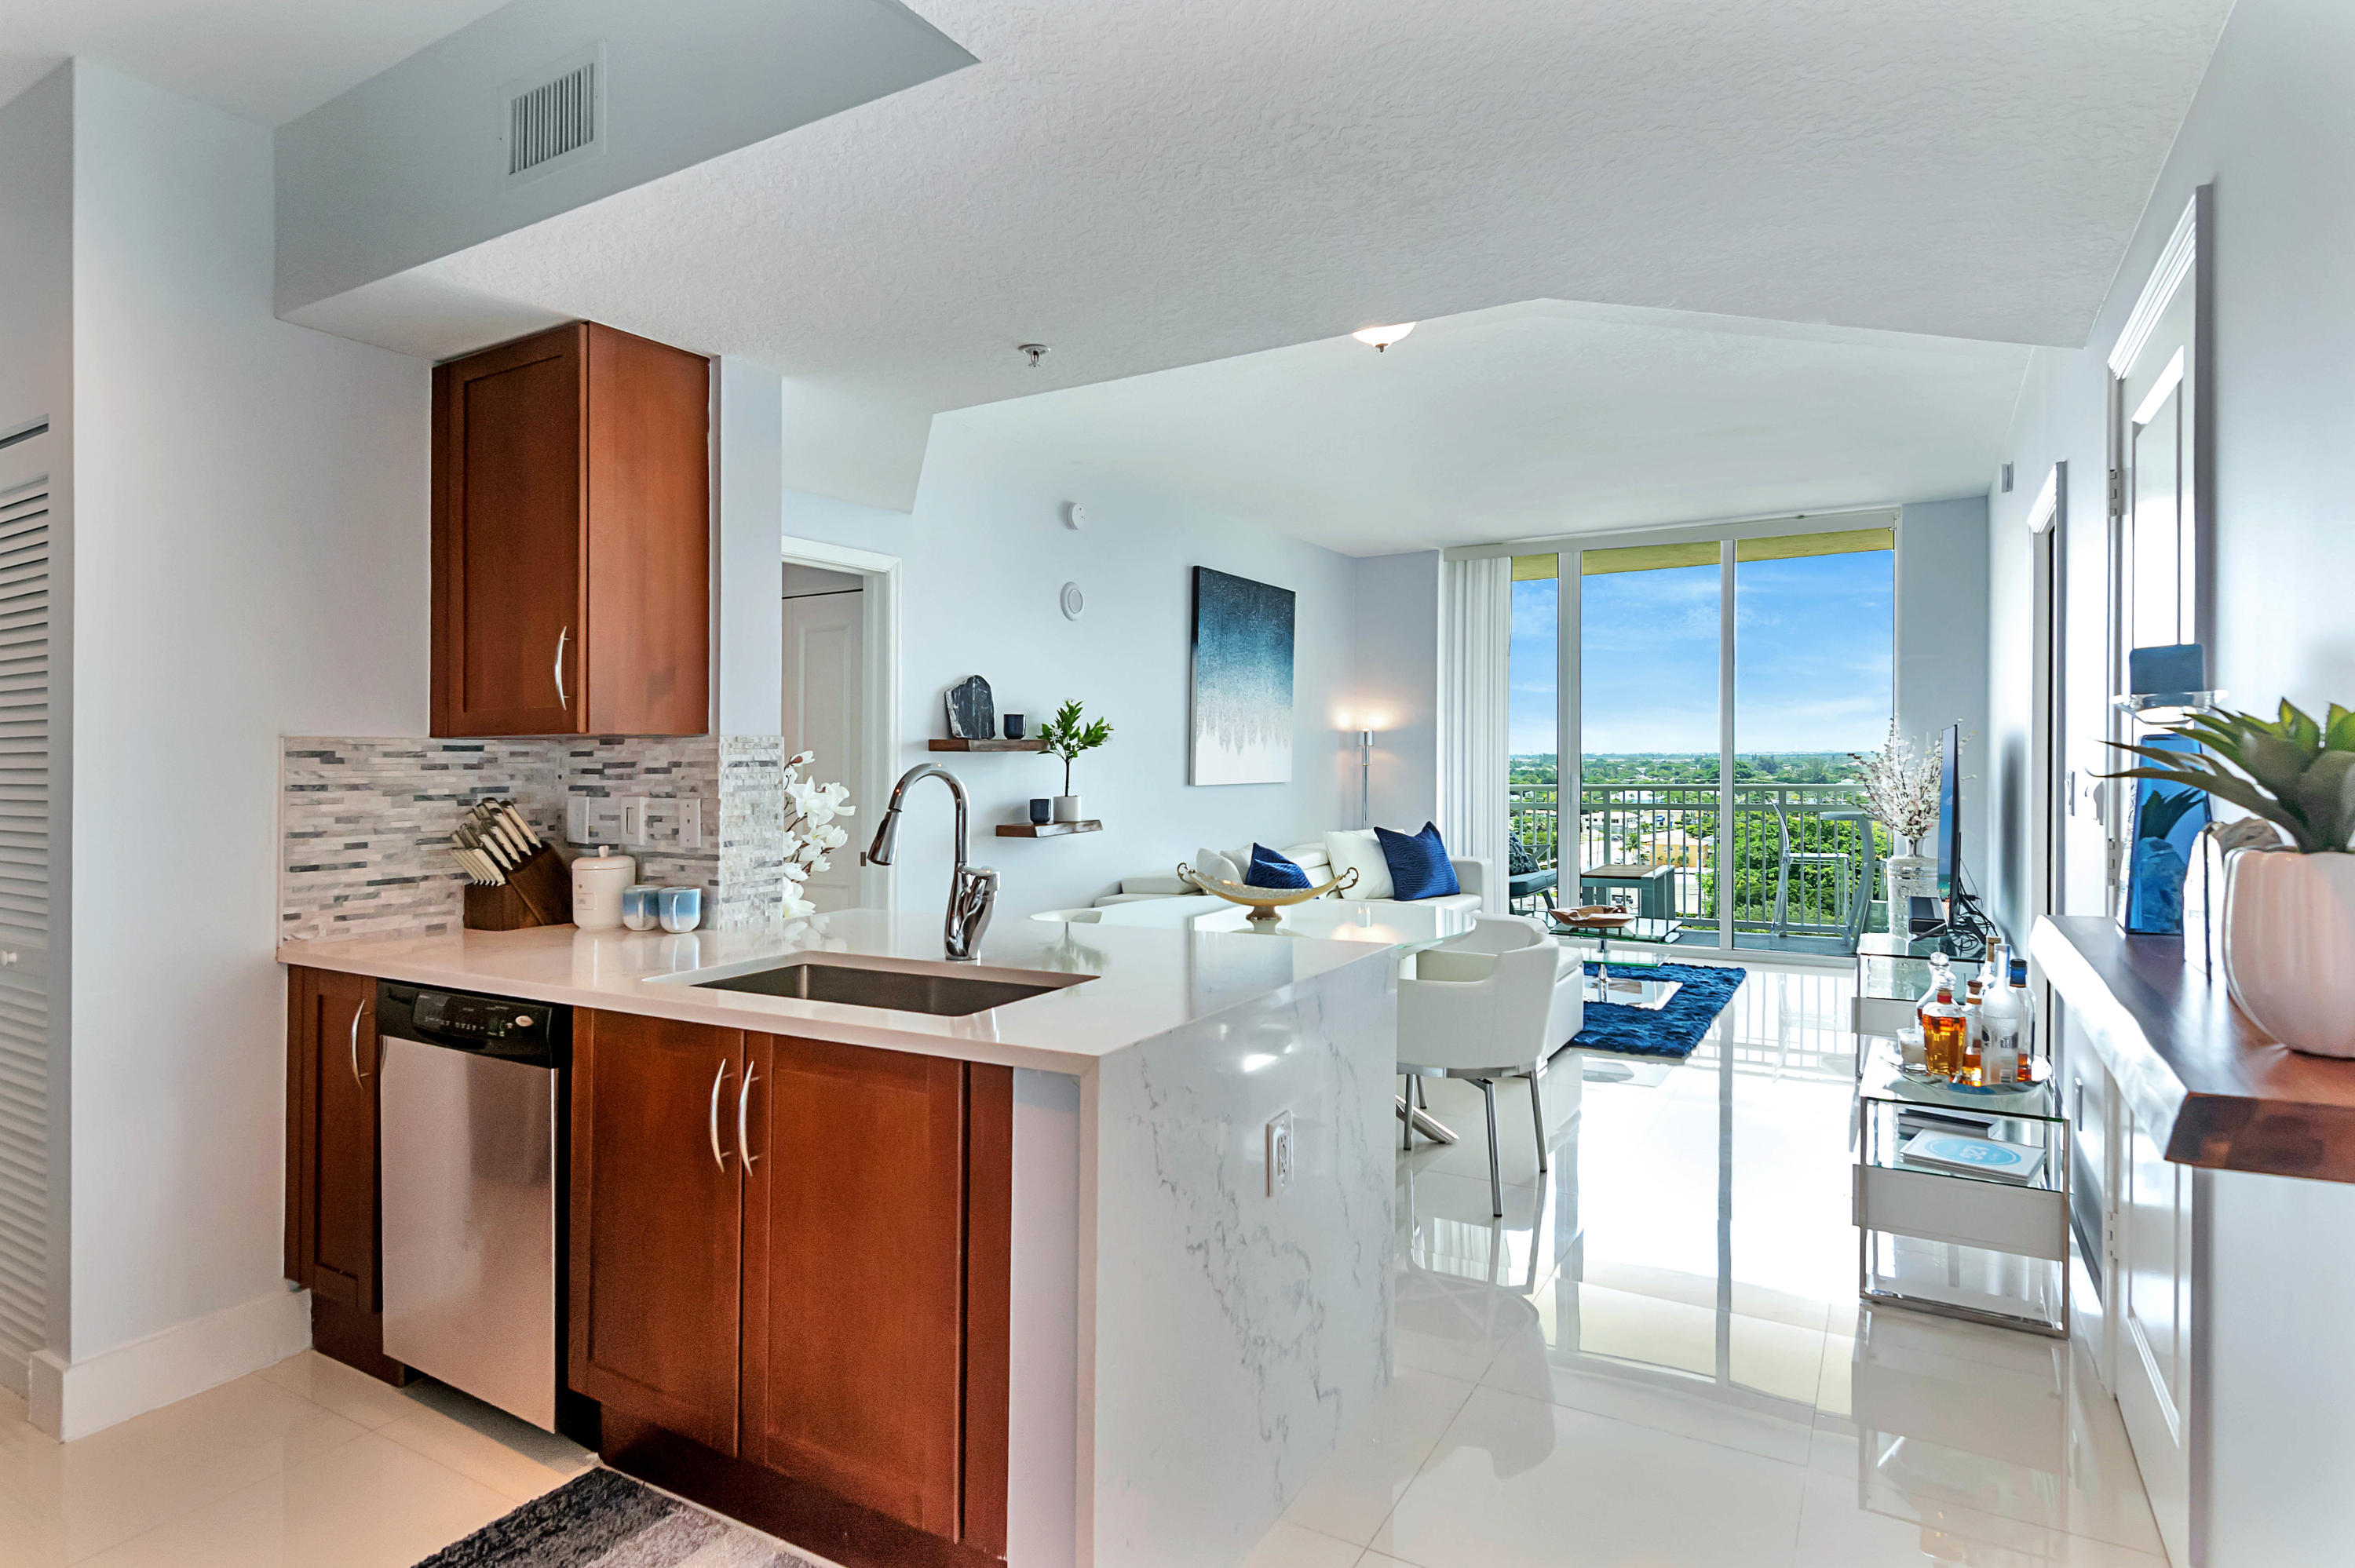 Fully furnished turnkey gorgeous 2/2 on the 10th floor updated condo home in resort style Casa Costa Condo Condominium. This condo home features rich porcelain floors throughout the entire apartment. Balcony with north eastern exposure overlooking the city with intracoastal & ocean views. White quartz counter-tops, brand new smooth top range and stainless-steel appliances in the kitchen, washer/dryer, walk-in closets, new TVs, new furniture. This resort style community boasts two pools, fully stocked fitness center, valet parking, sauna, steam room, clubhouse, and much more! Only 1 mile to the beach. Water and sewer, basic cable and high-speed internet (as provided by association) is included. PERFECT PLACE TO ENJOY THE FLORIDA LIFESTYLE!